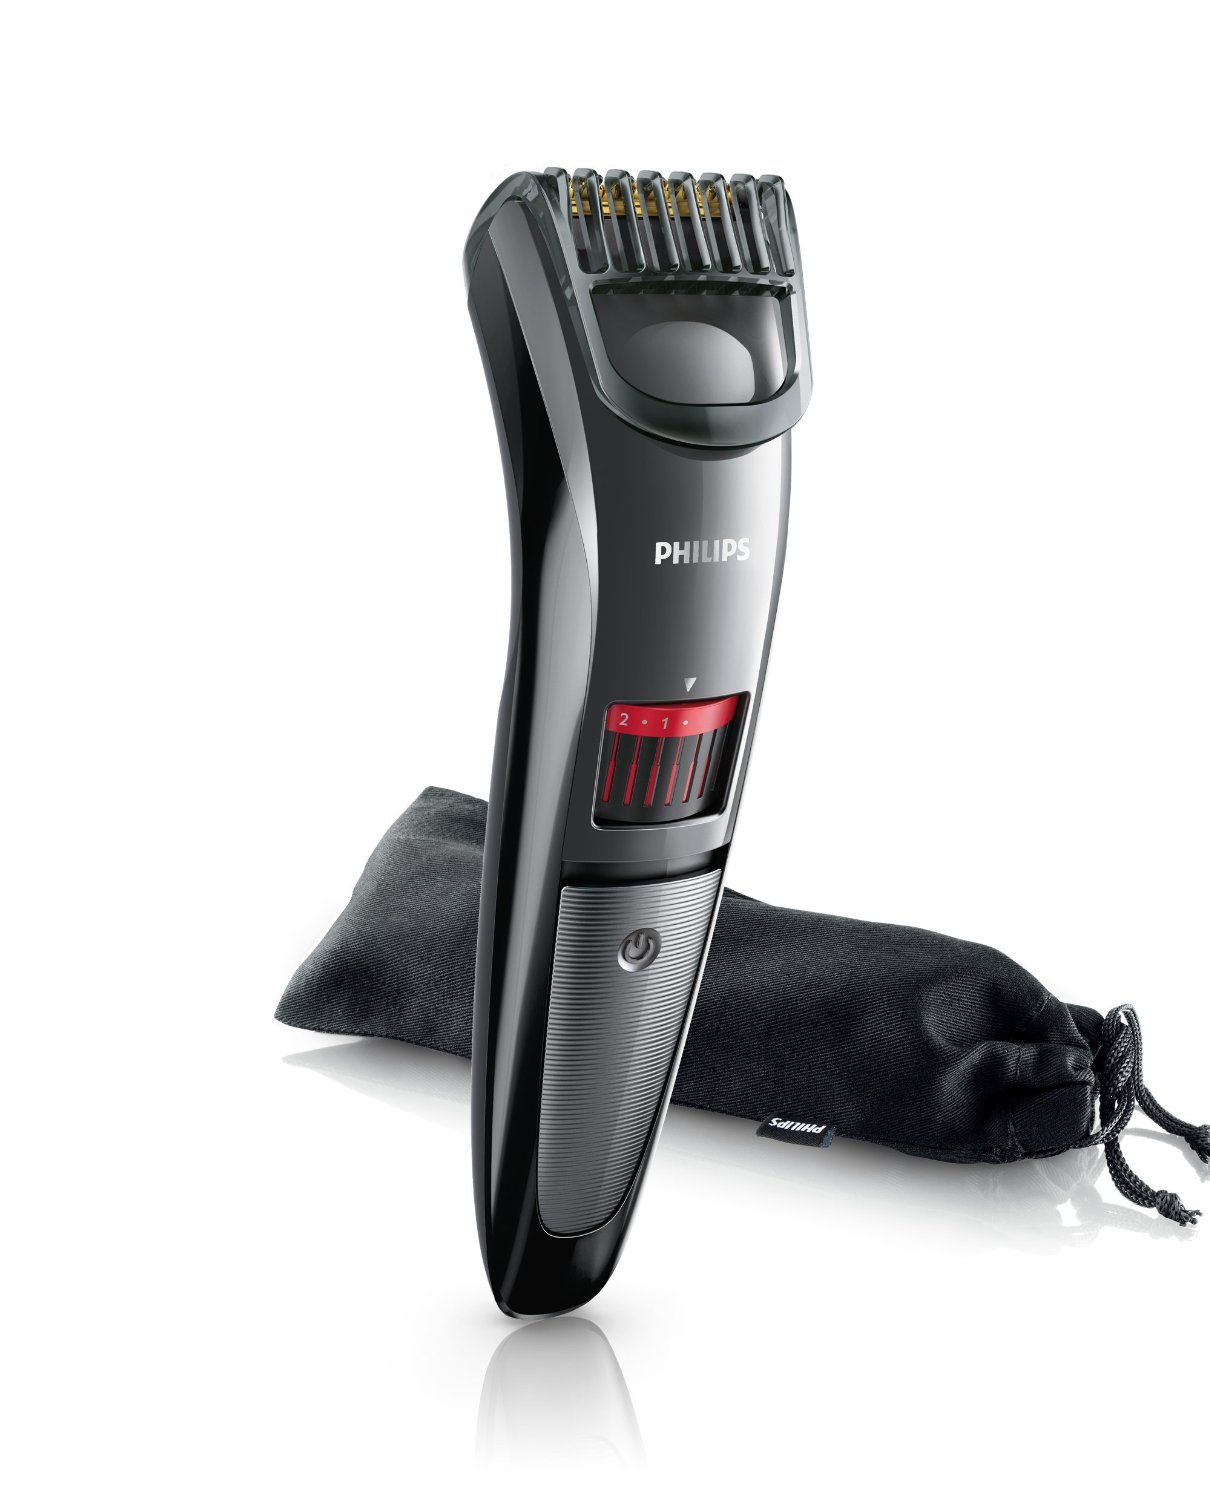 philips qt4015 23 stubble trimmer review beard trimmer. Black Bedroom Furniture Sets. Home Design Ideas